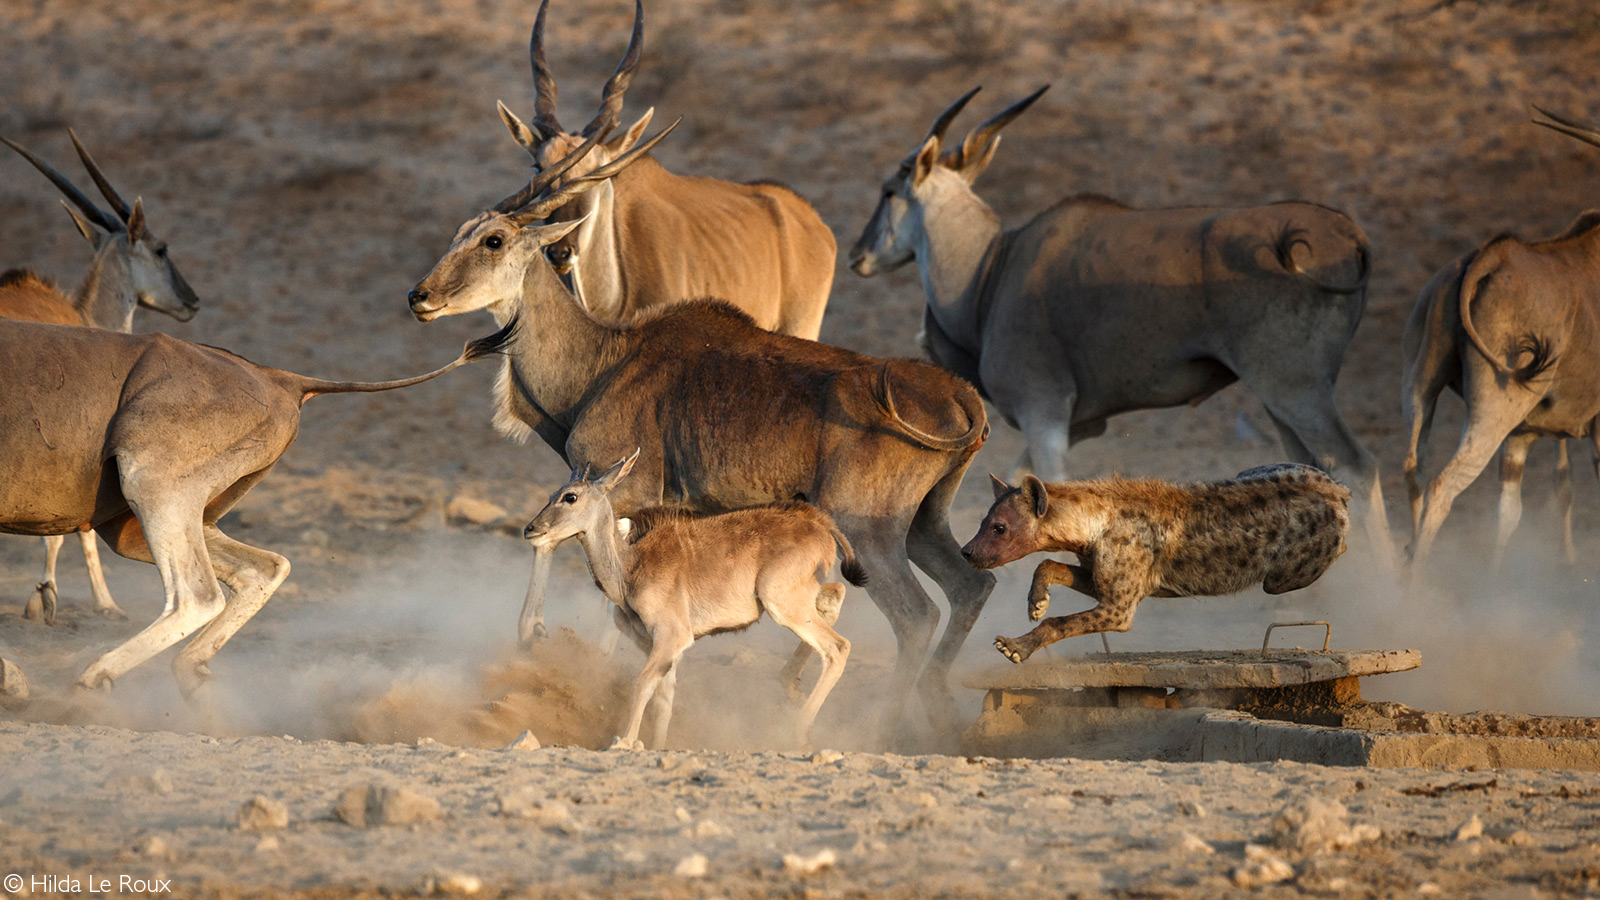 Moments before a spotted hyena catches an eland calf. Kgalagadi Transfrontier Park, South Africa © Hilda Le Roux